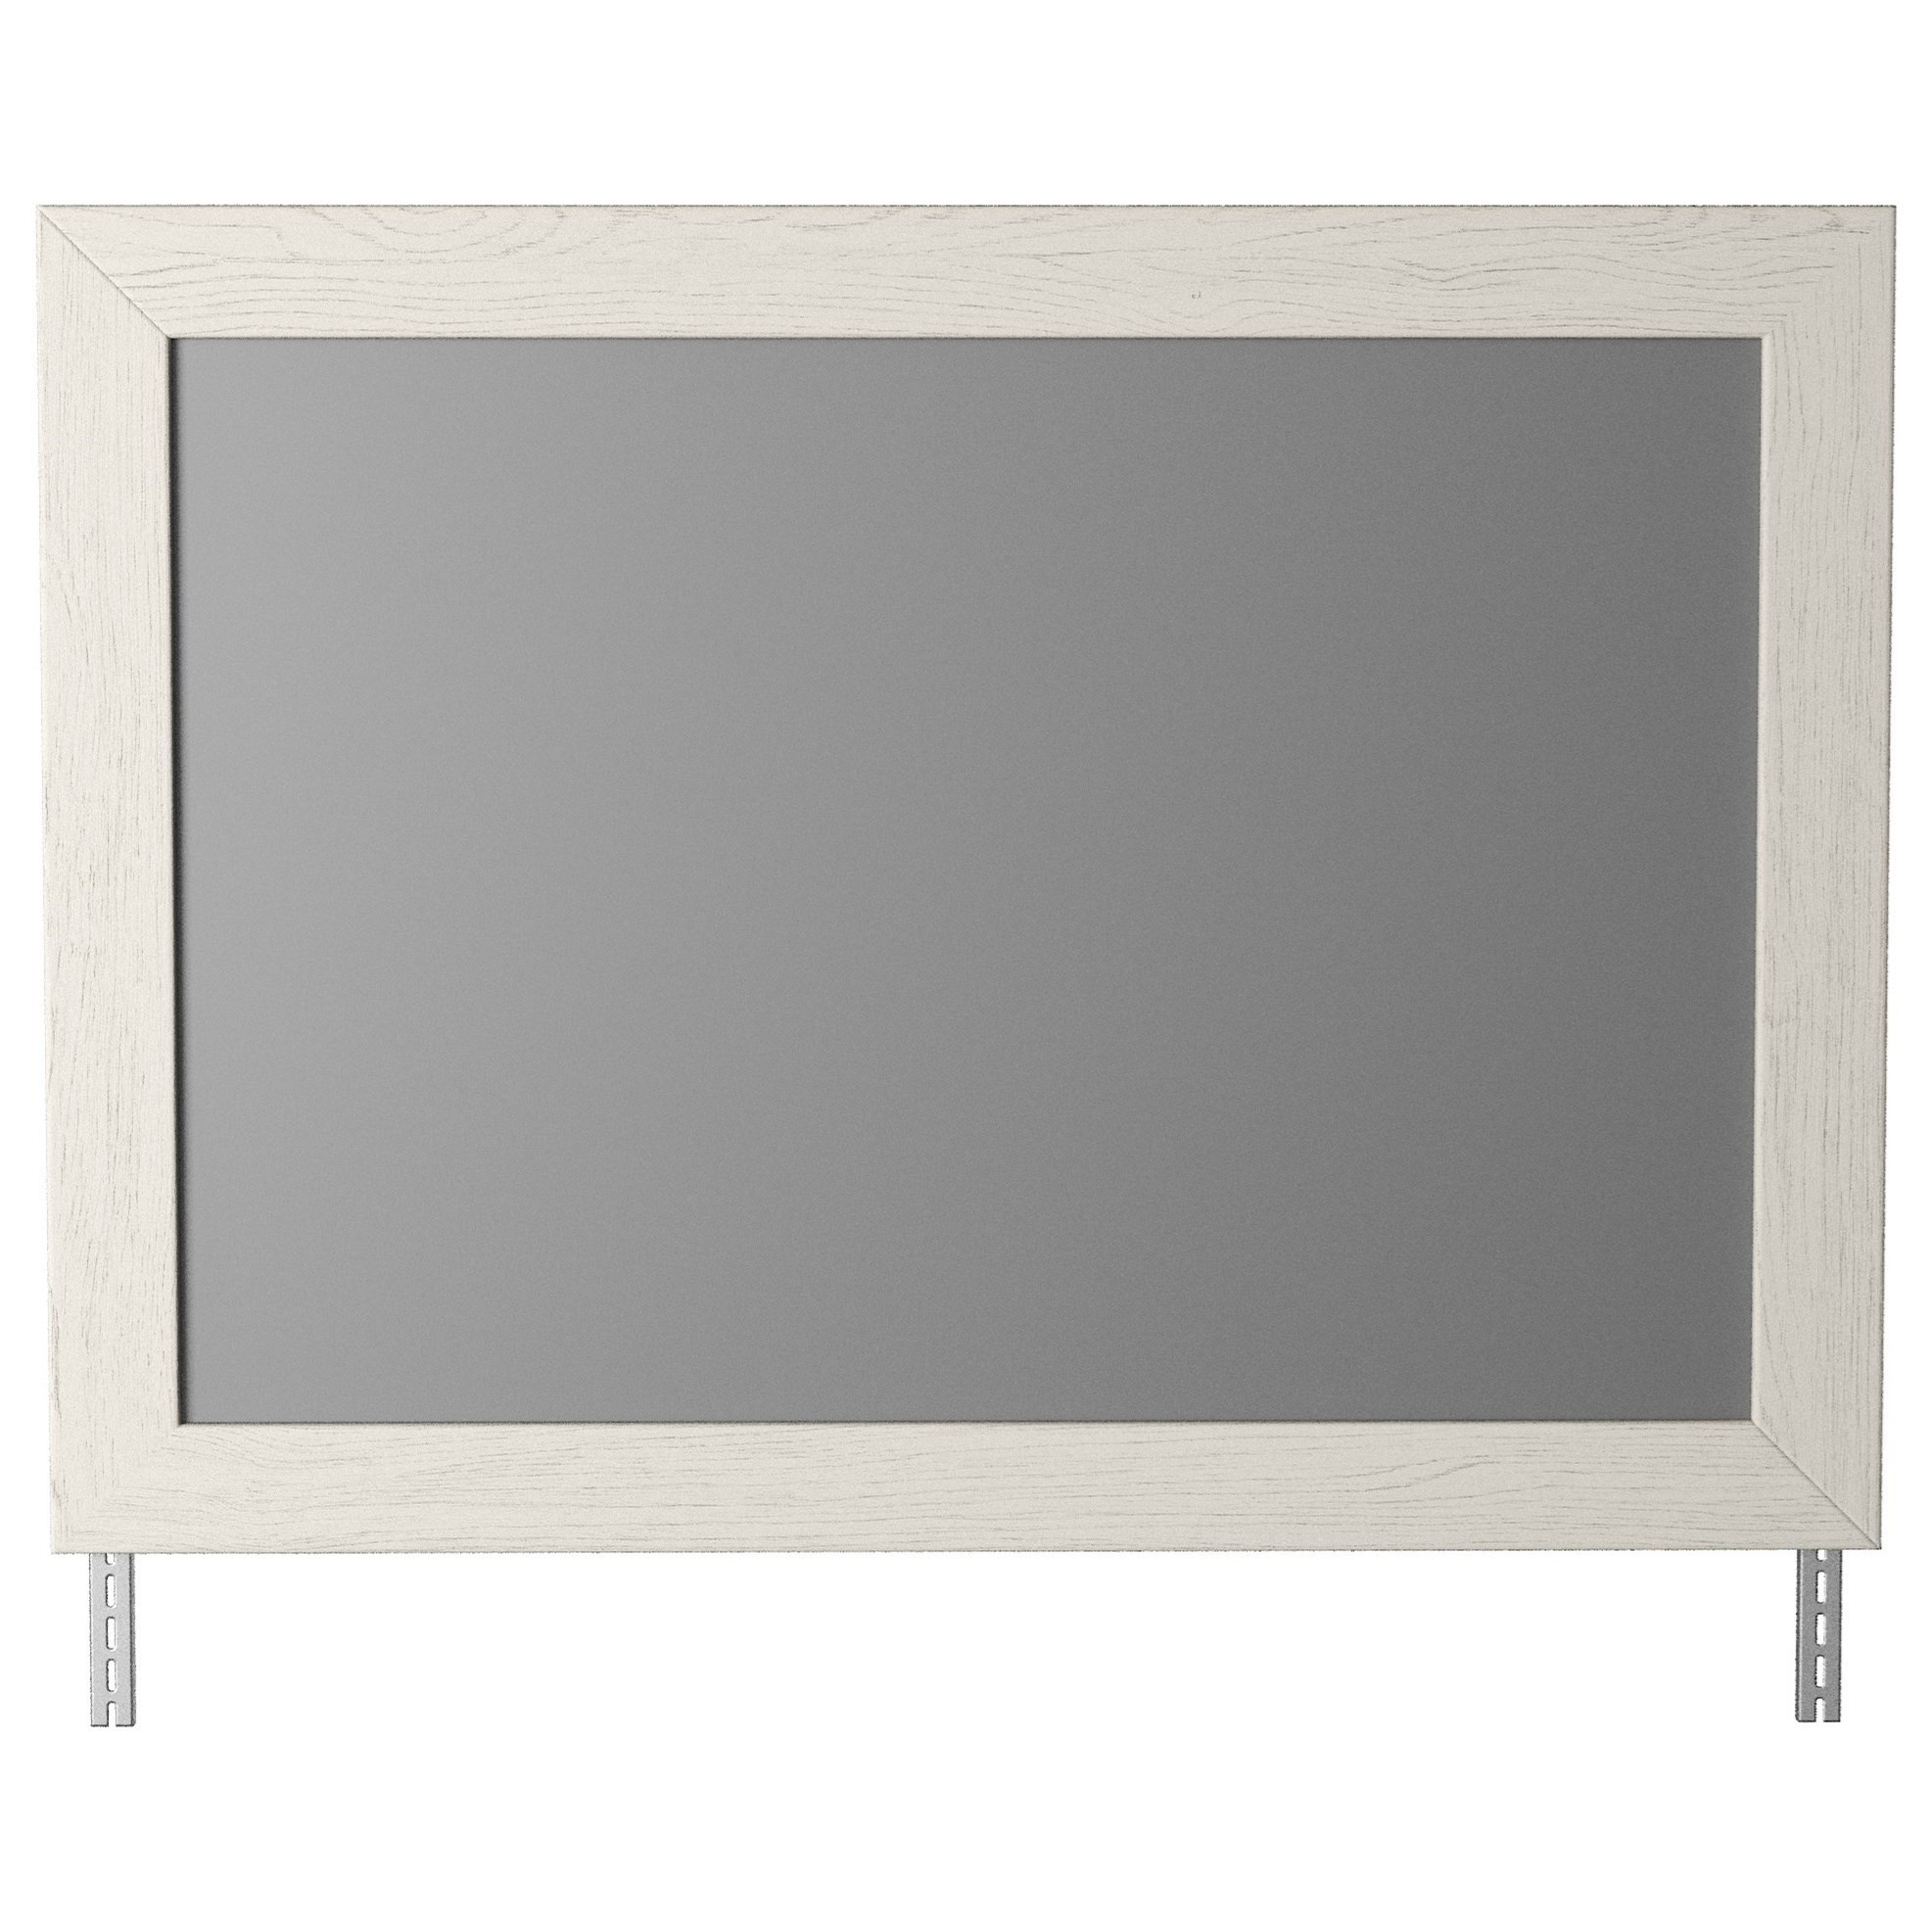 Stelsie Bedroom Mirror by Signature Design by Ashley at Zak's Warehouse Clearance Center